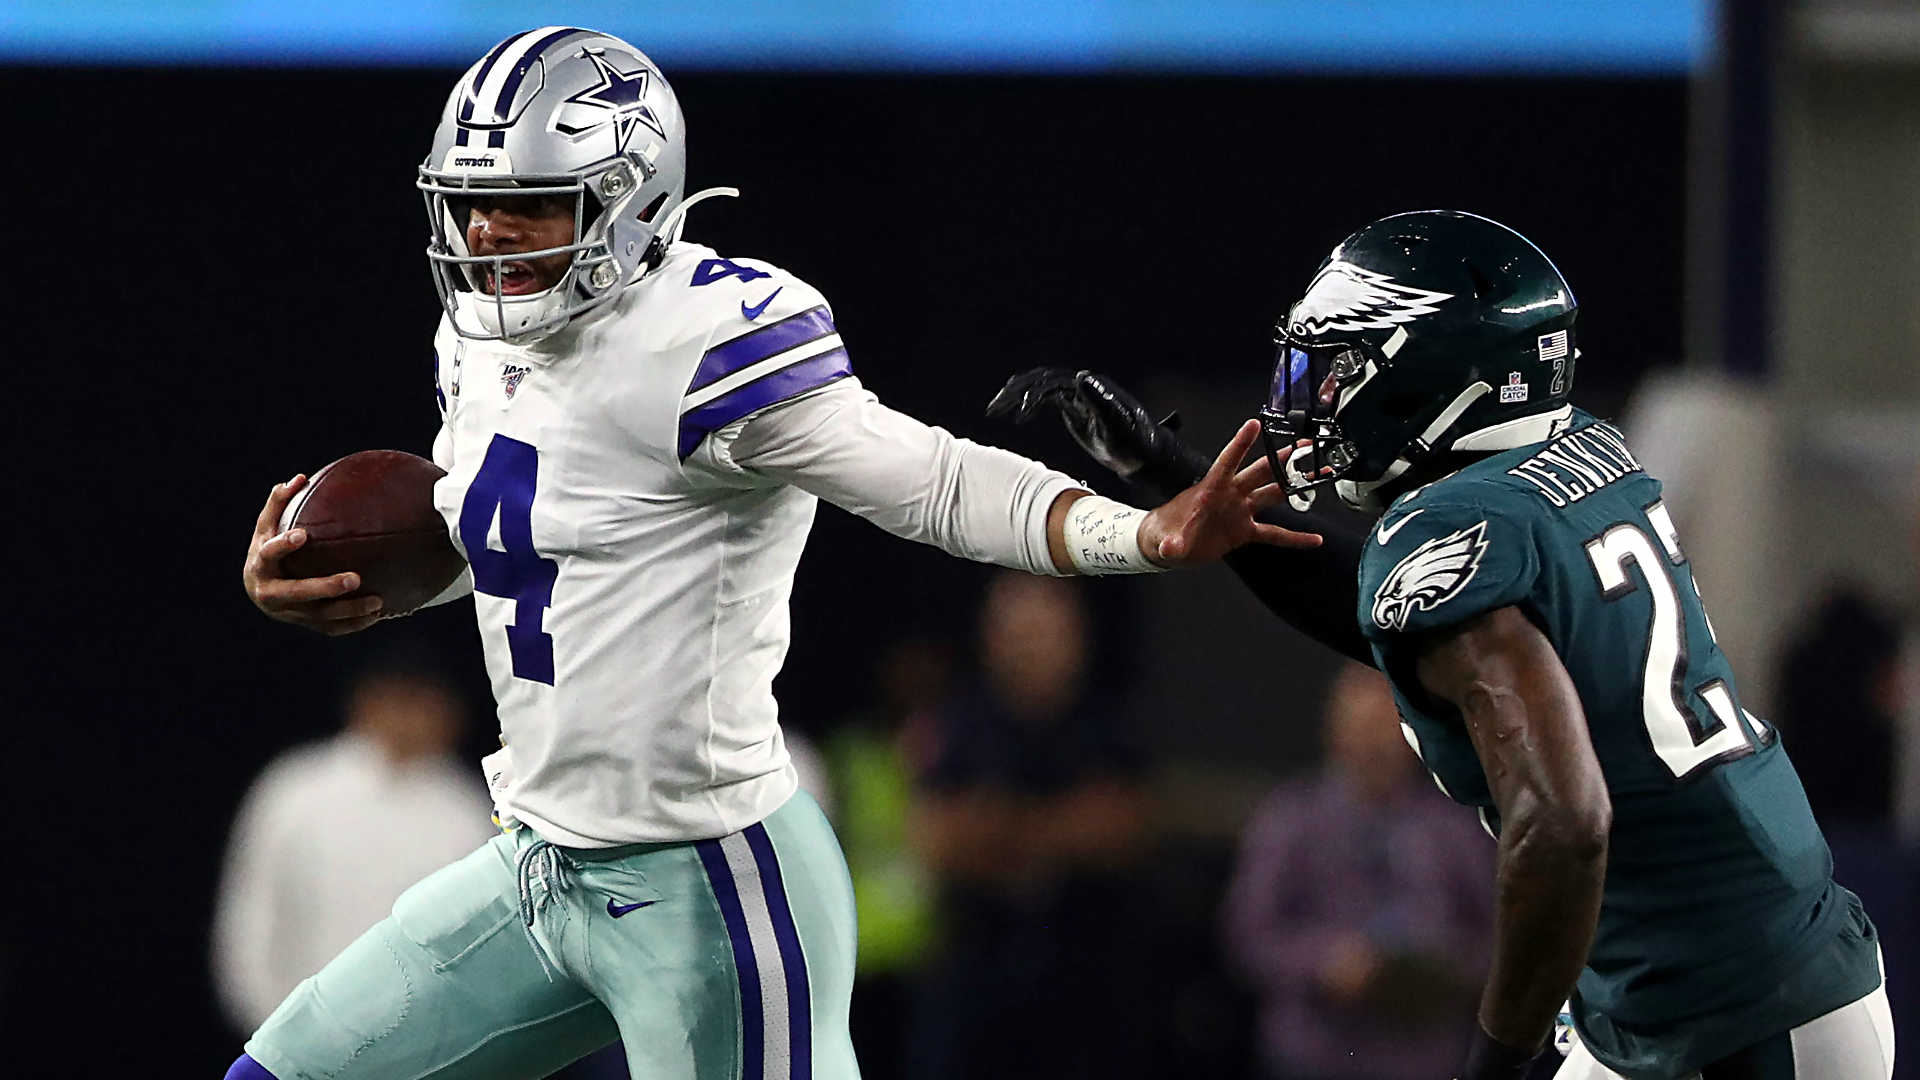 NFL playoff picture: How Eagles or Cowboys can clinch the NFC East in Week 17